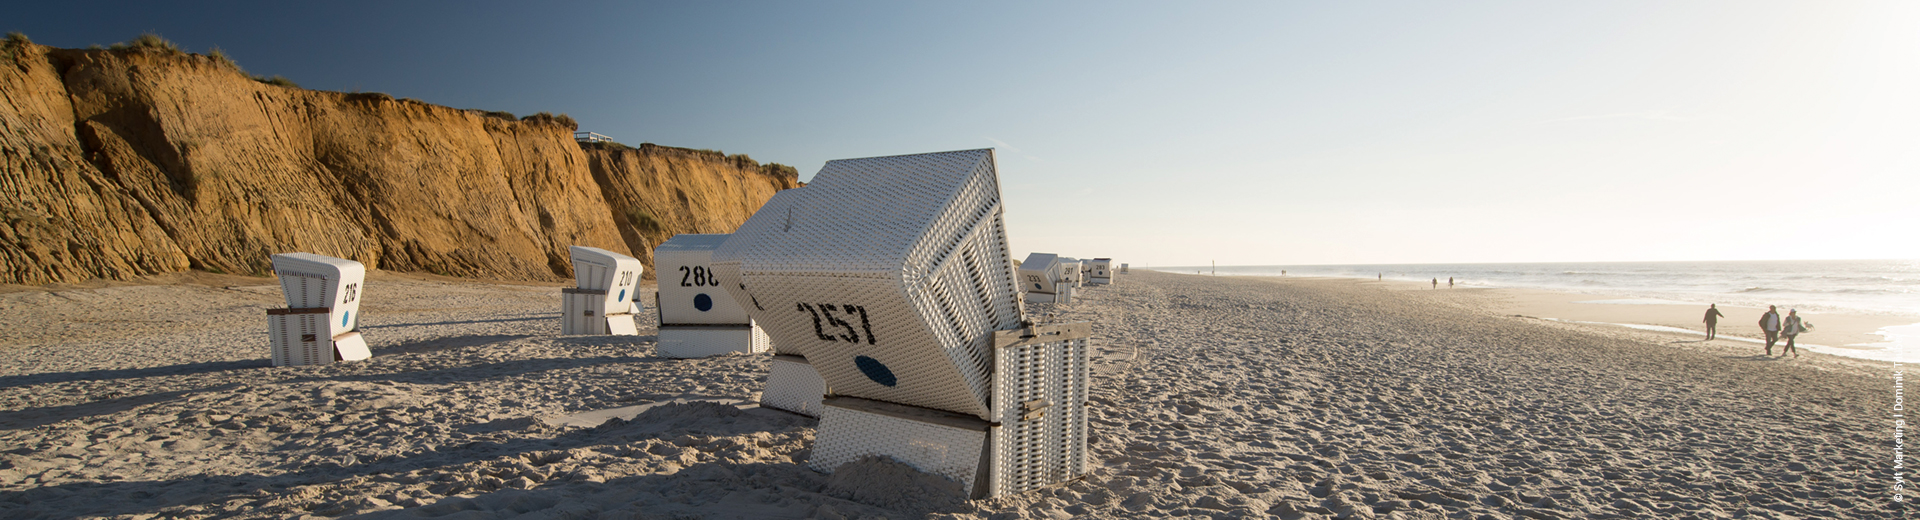 Concours Sylt